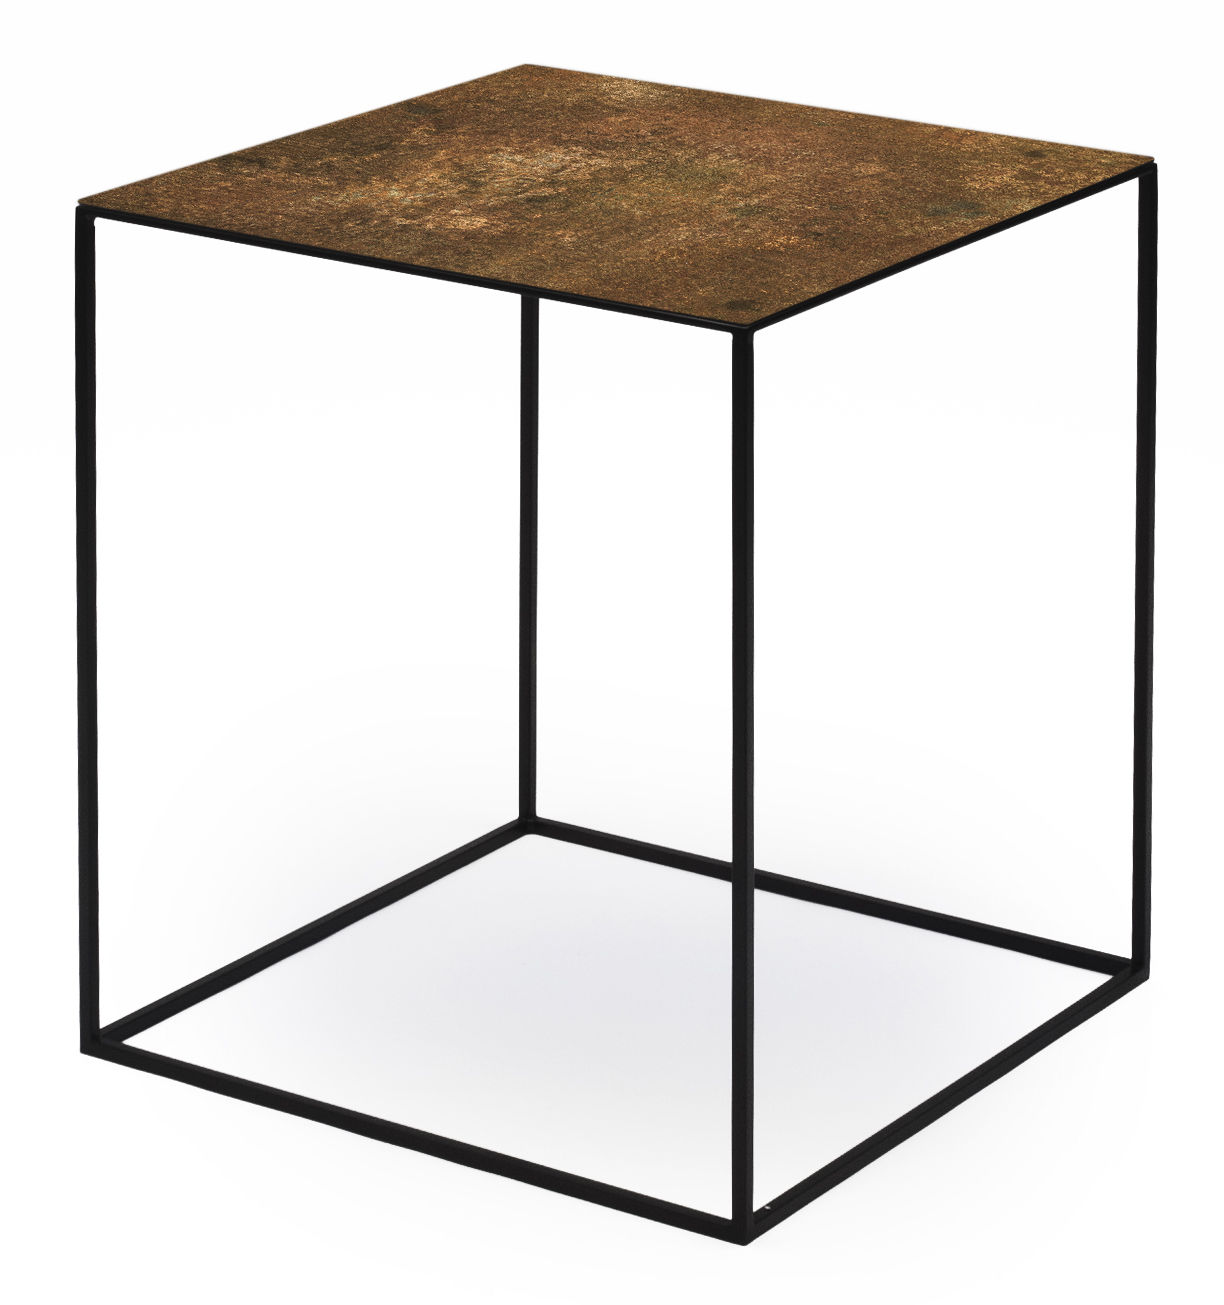 Table Basse Cuivre Table Basse Slim Irony Art 41 X 41 X H 46 Cm Zeus